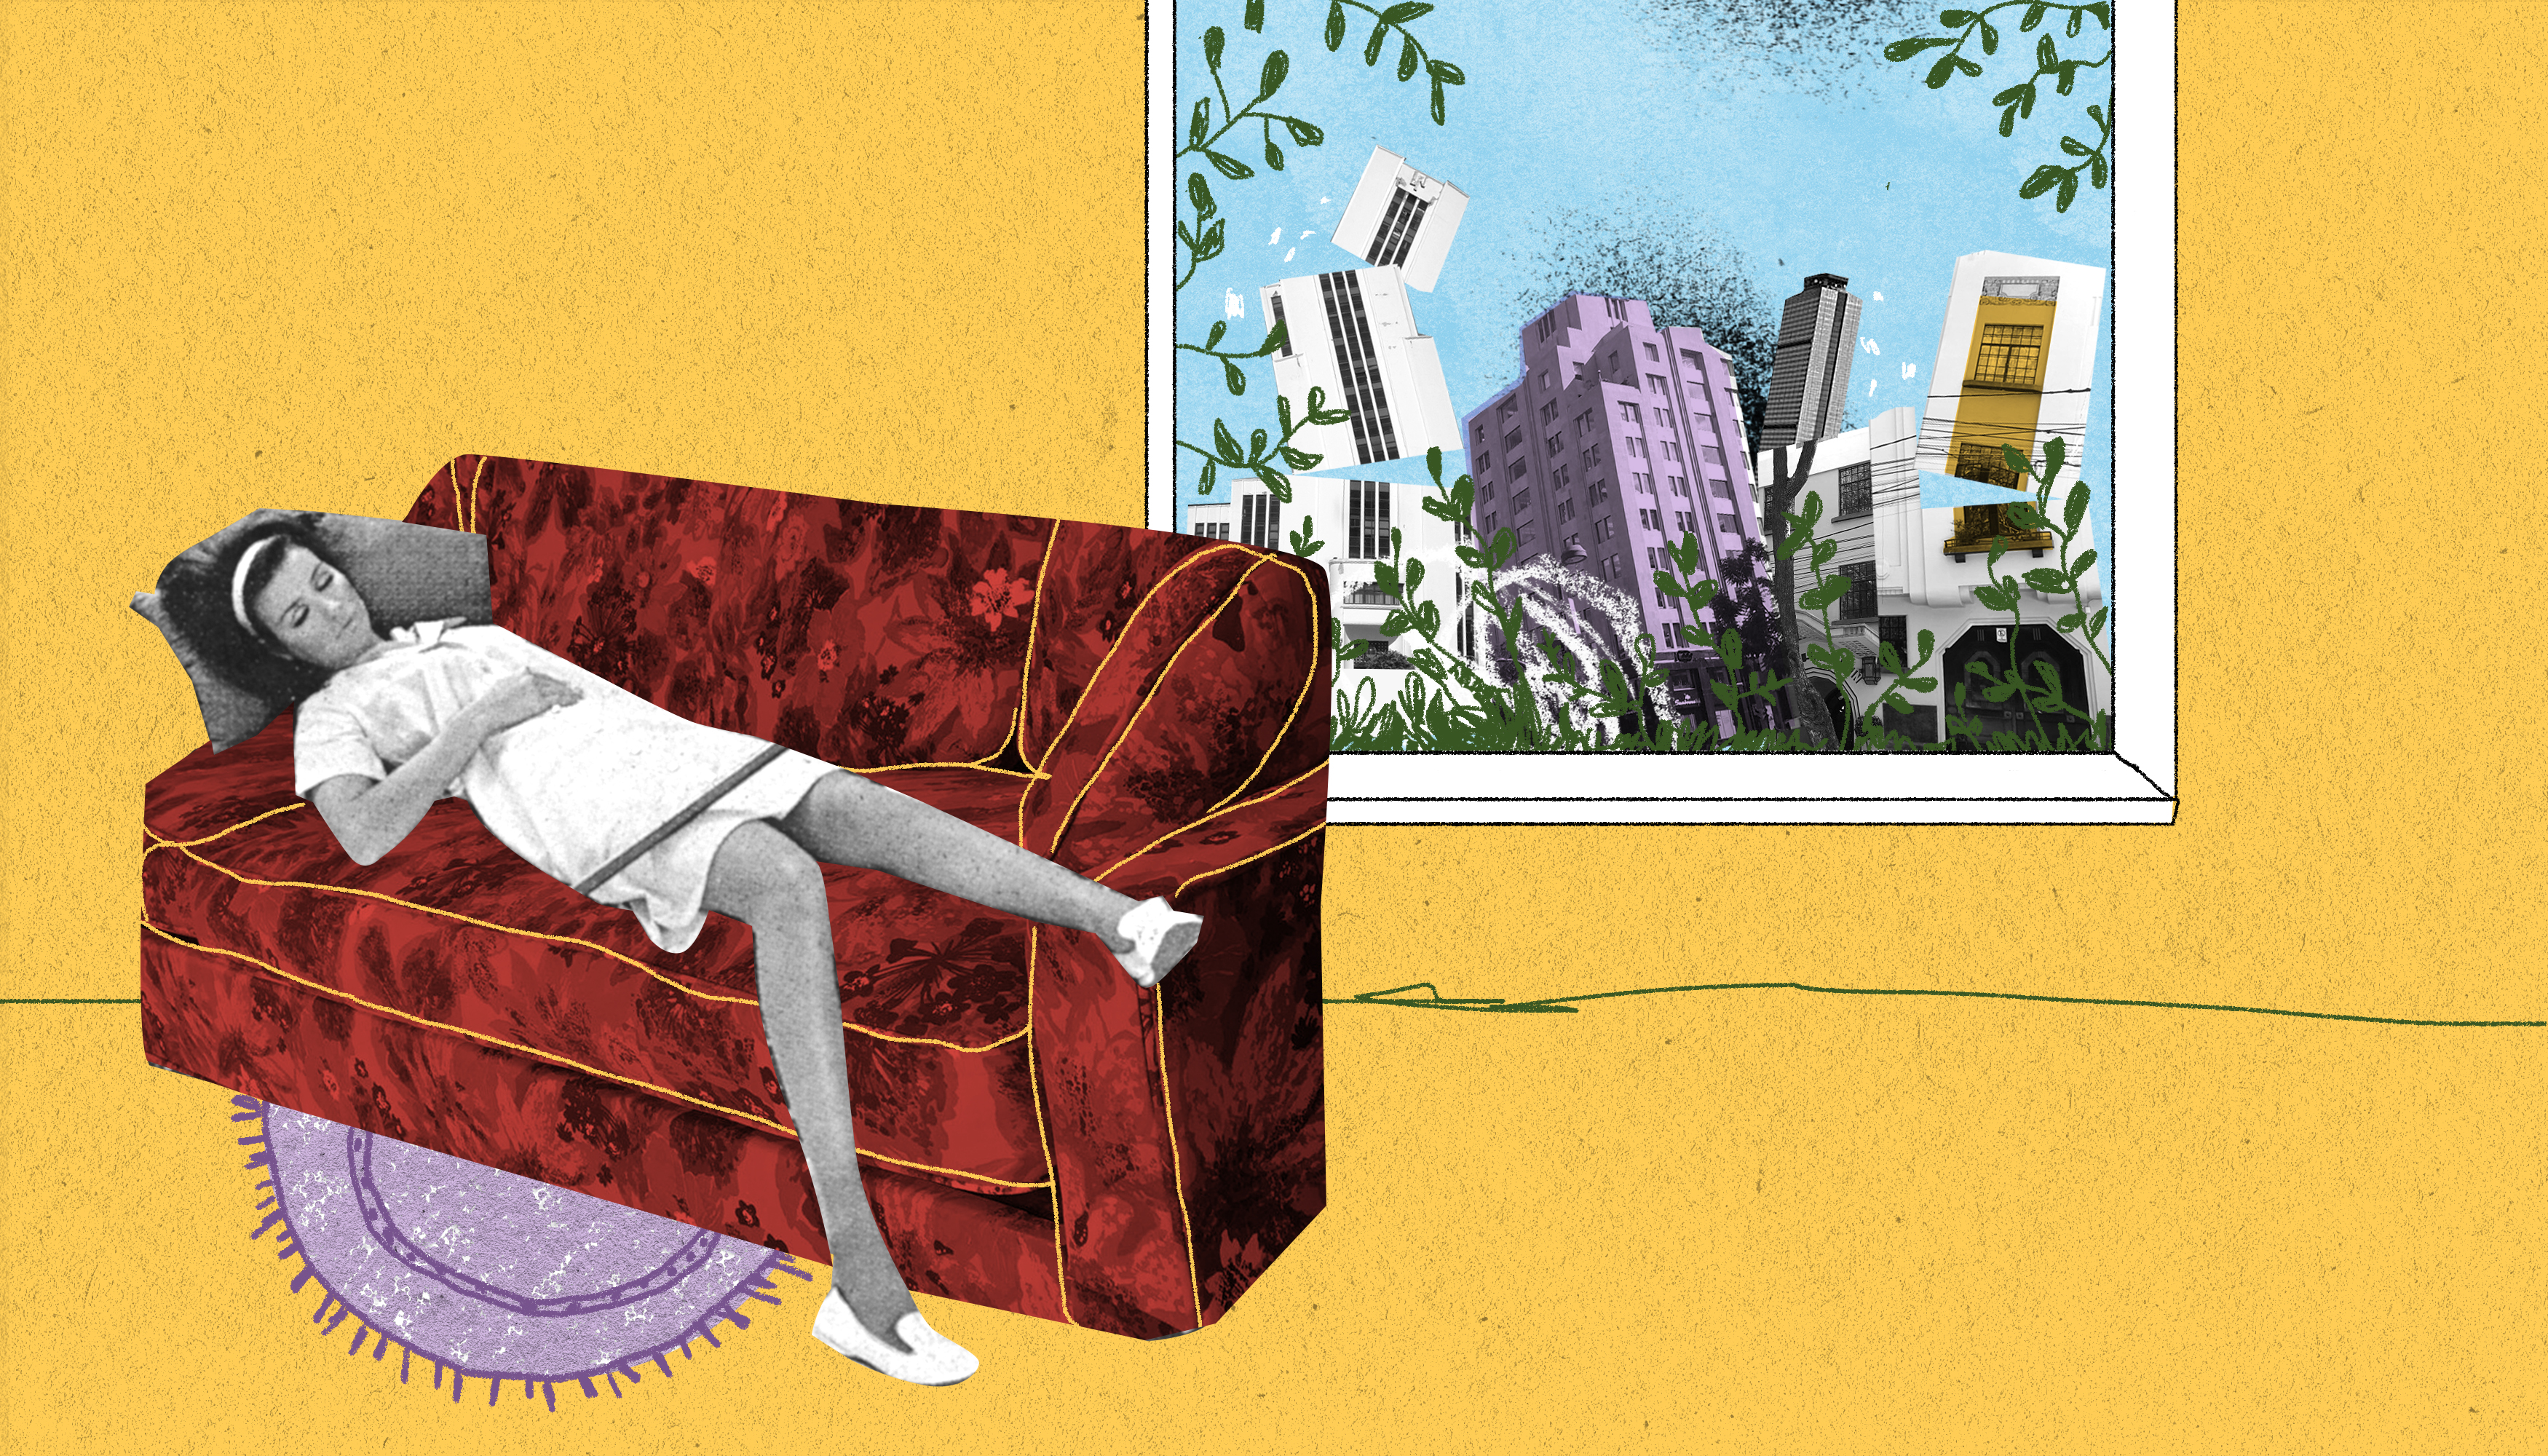 A woman lies on a couch while buildings collapse outside her window. Illustration